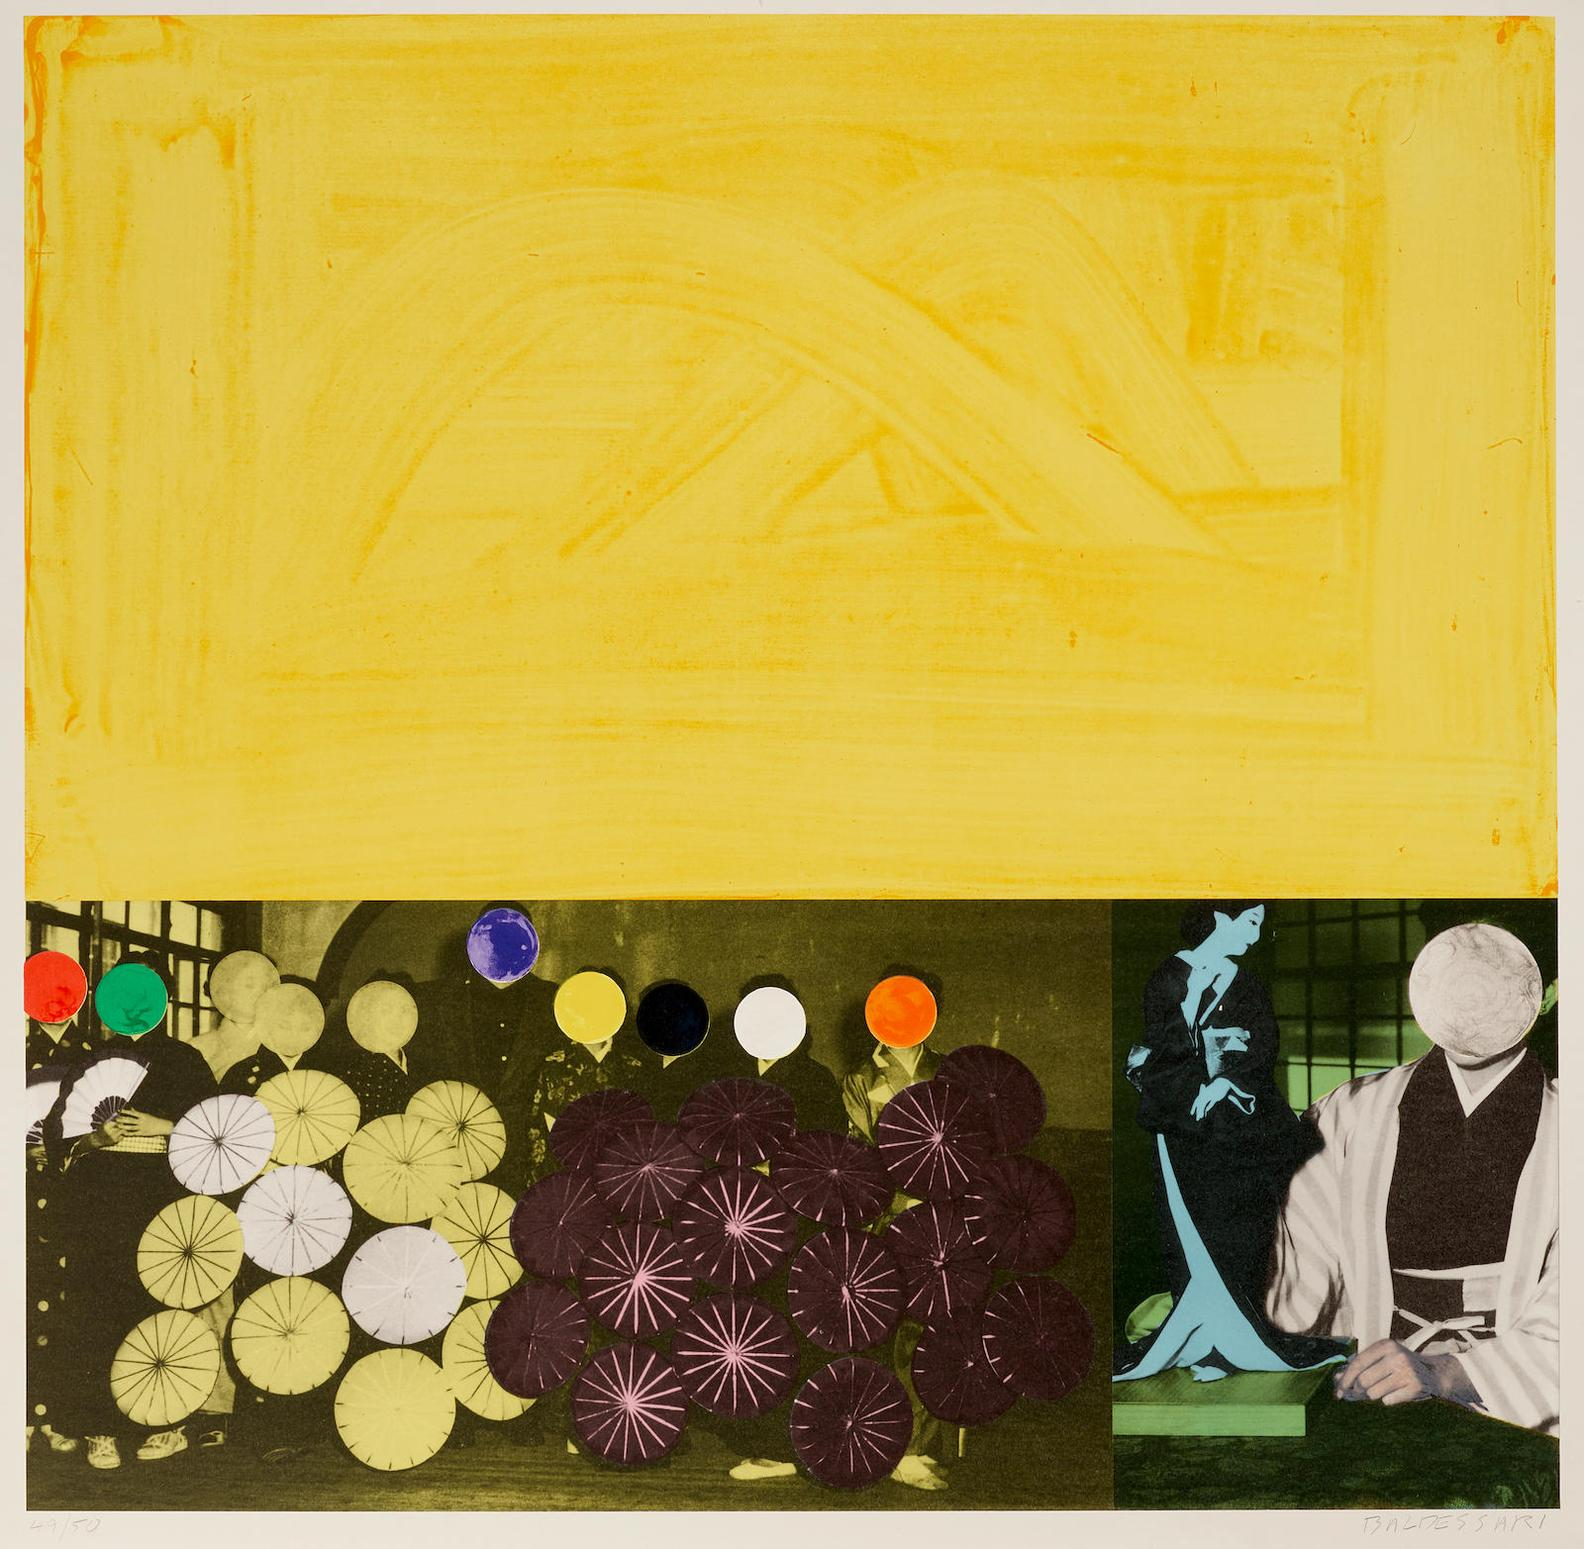 John Baldessari-Japanese (Yellow), From Cliche Series-1995